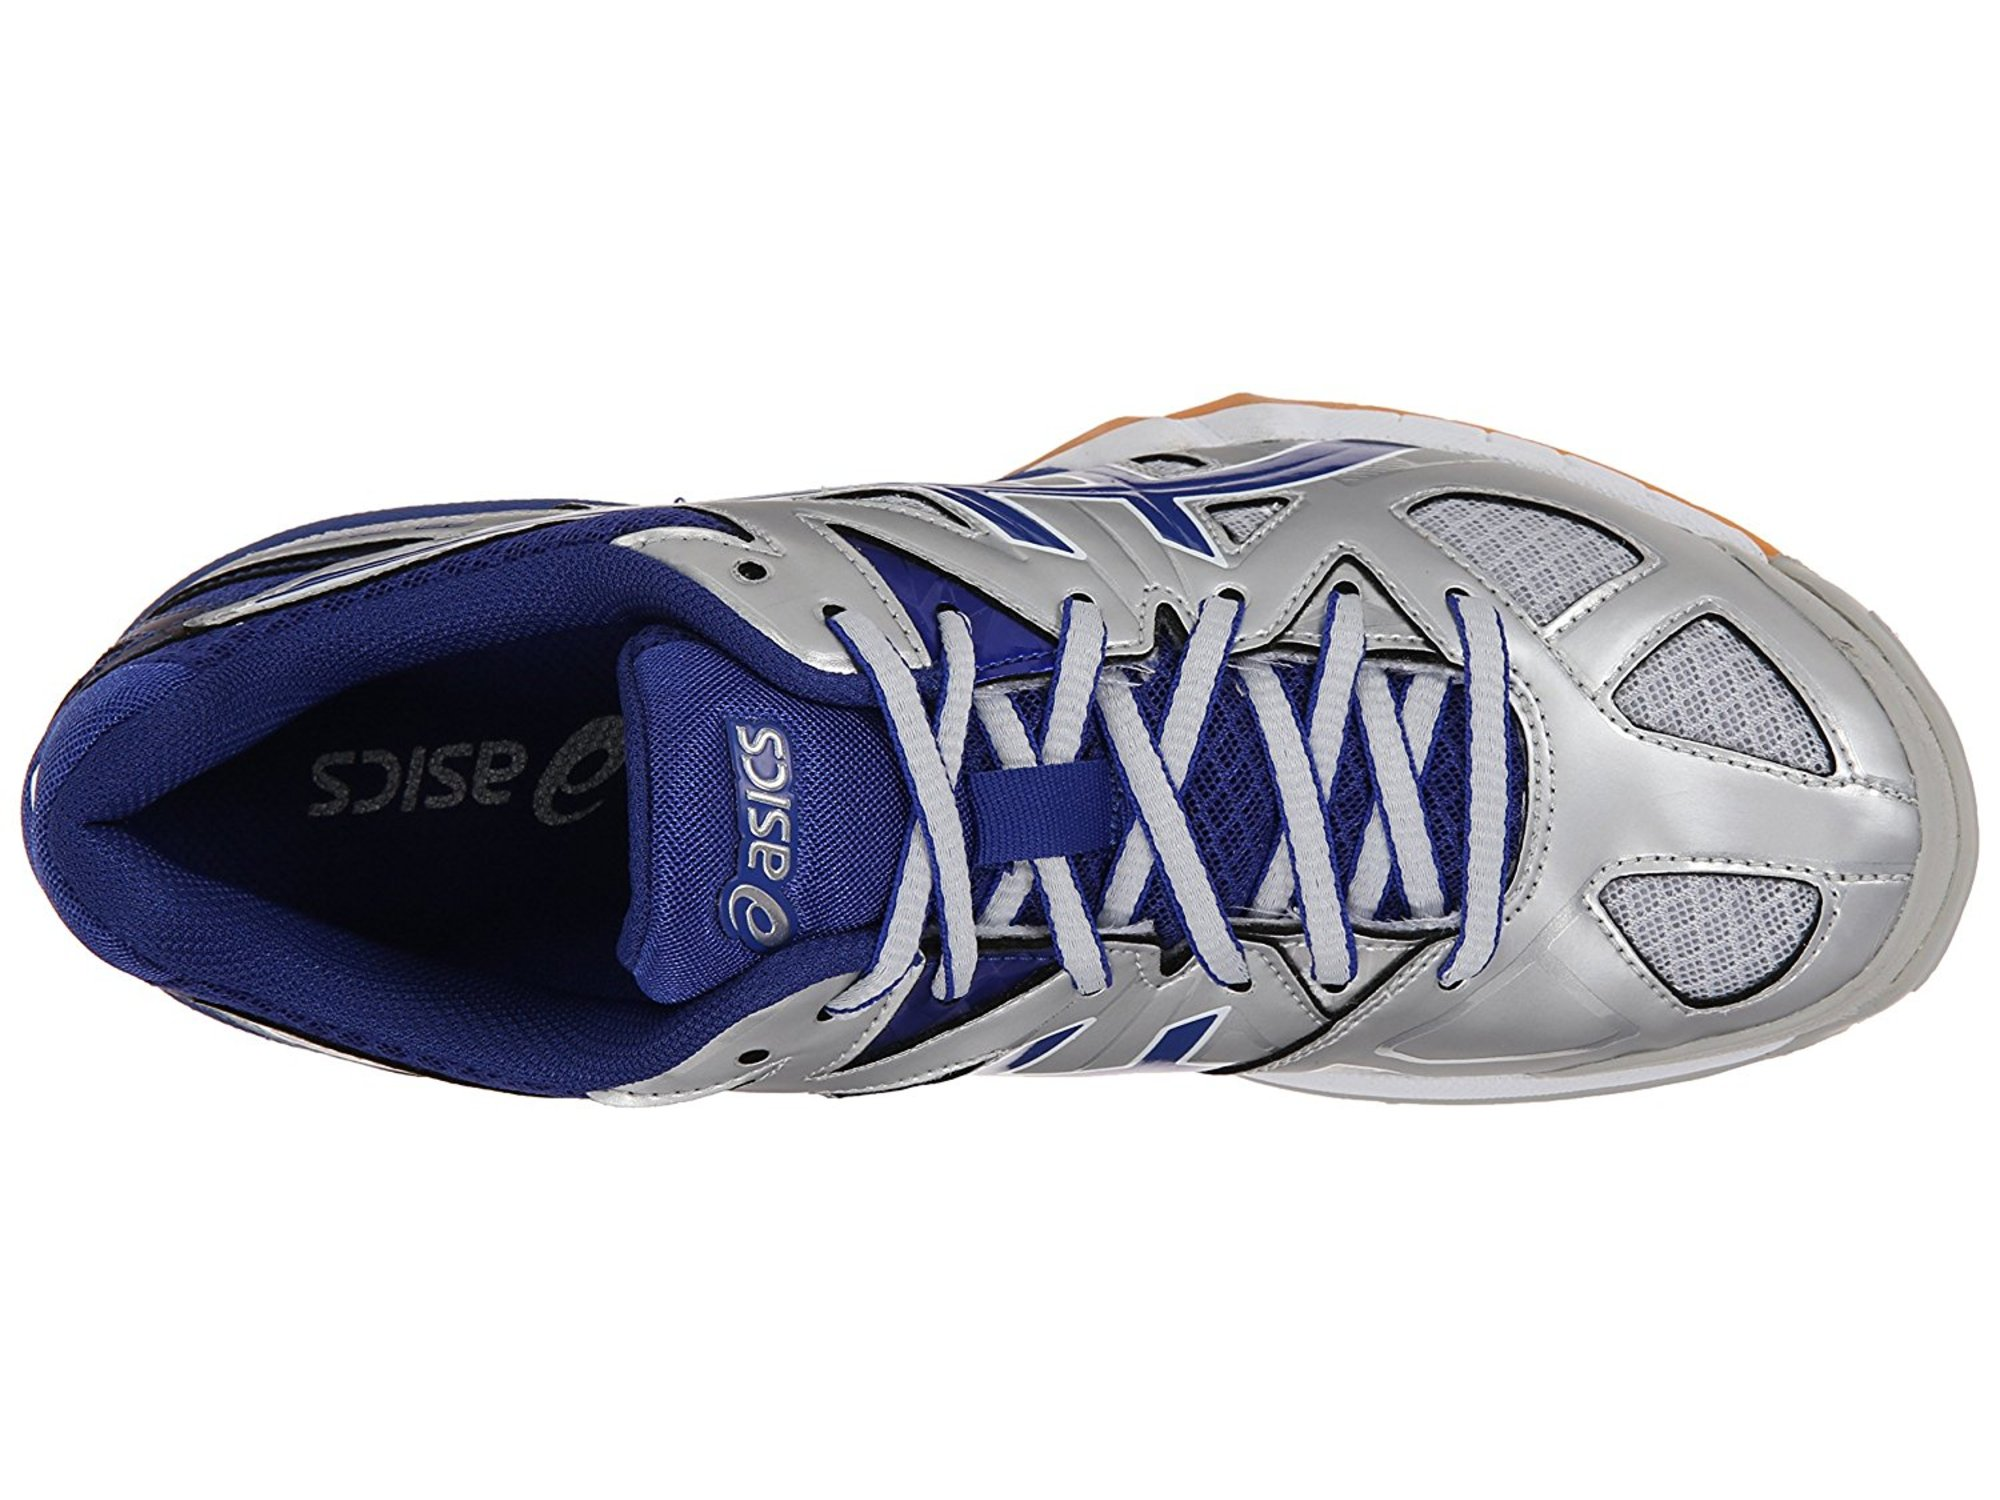 Asics Womens Gel Tactic Low Top Lace Up Running Sneaker by ASICS